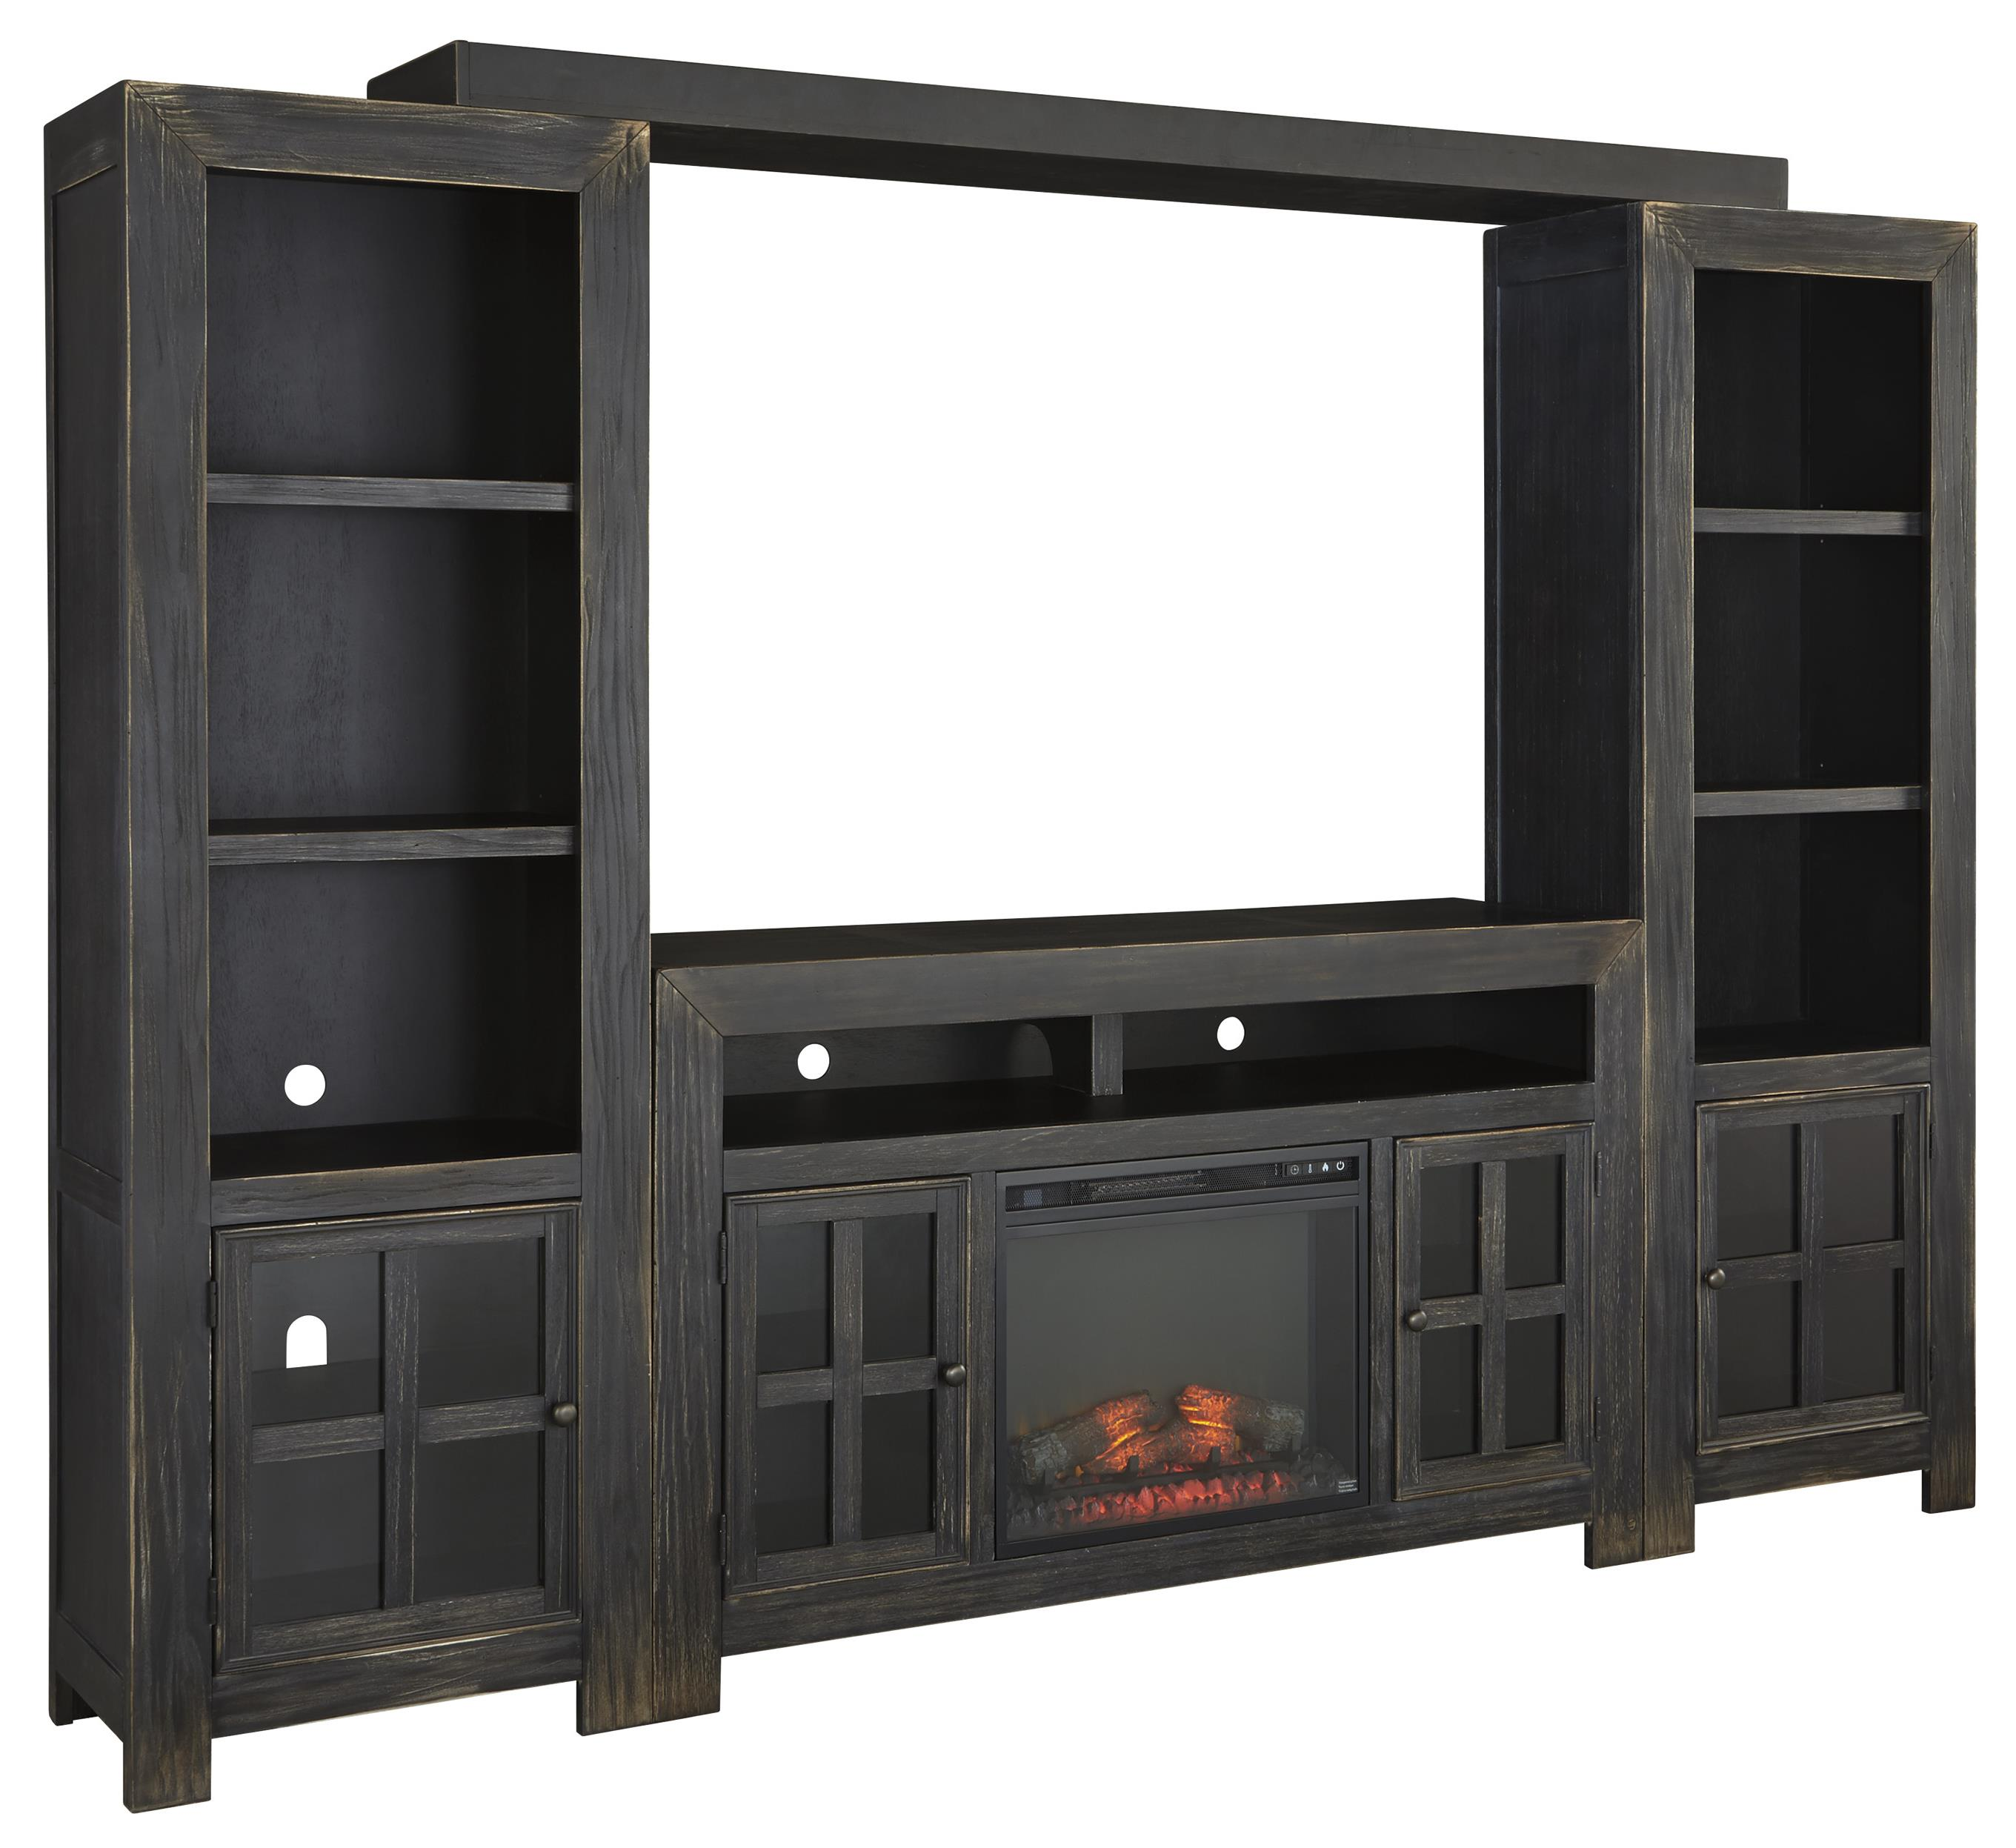 product store ashley furniture cupboard option fireplace xl dealer mentor oh stands w stand flynter best tv